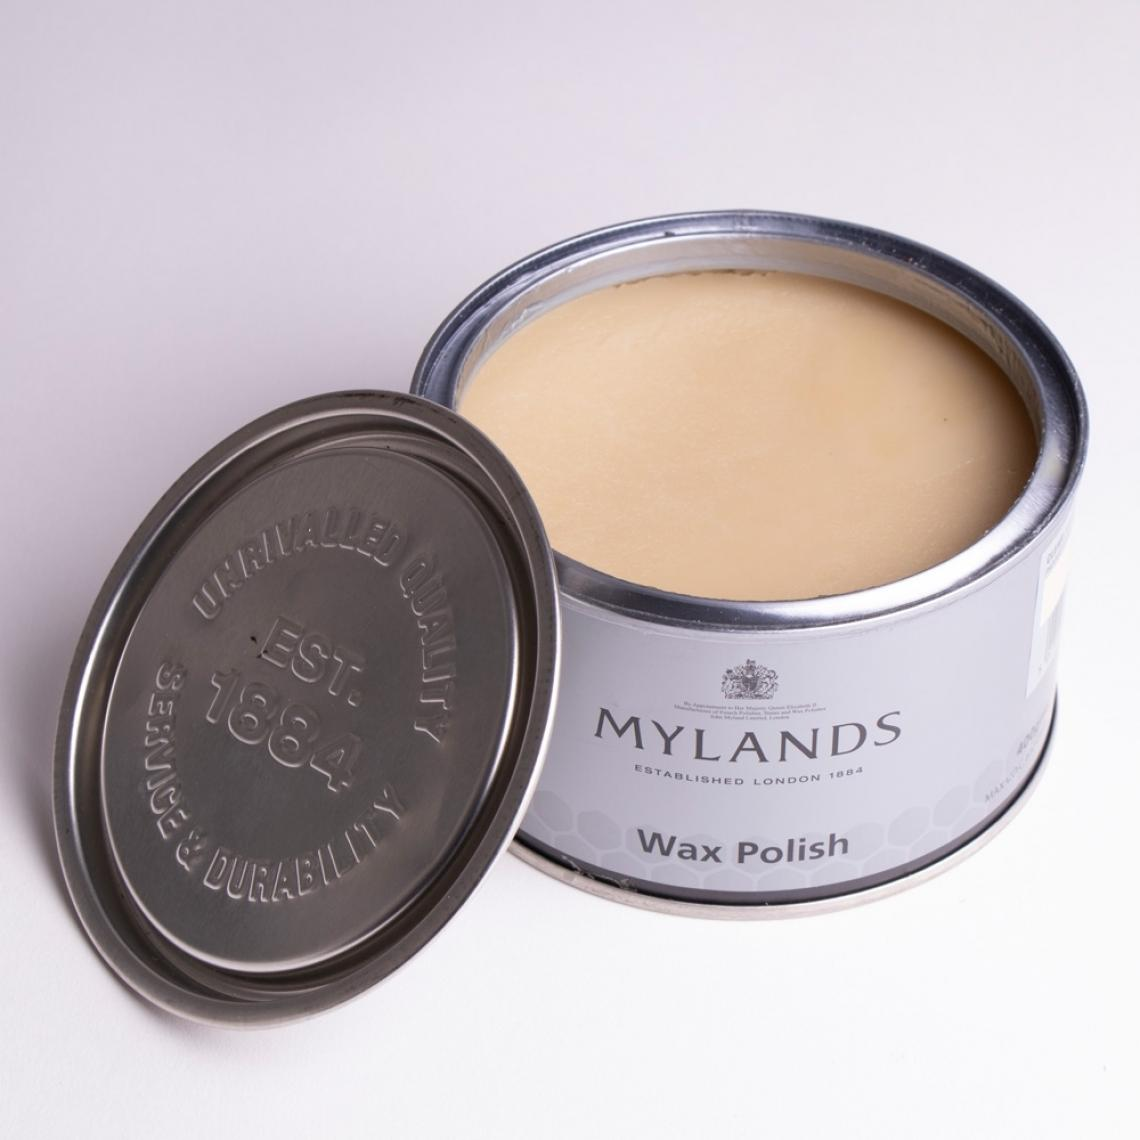 80 - Mylands Wax